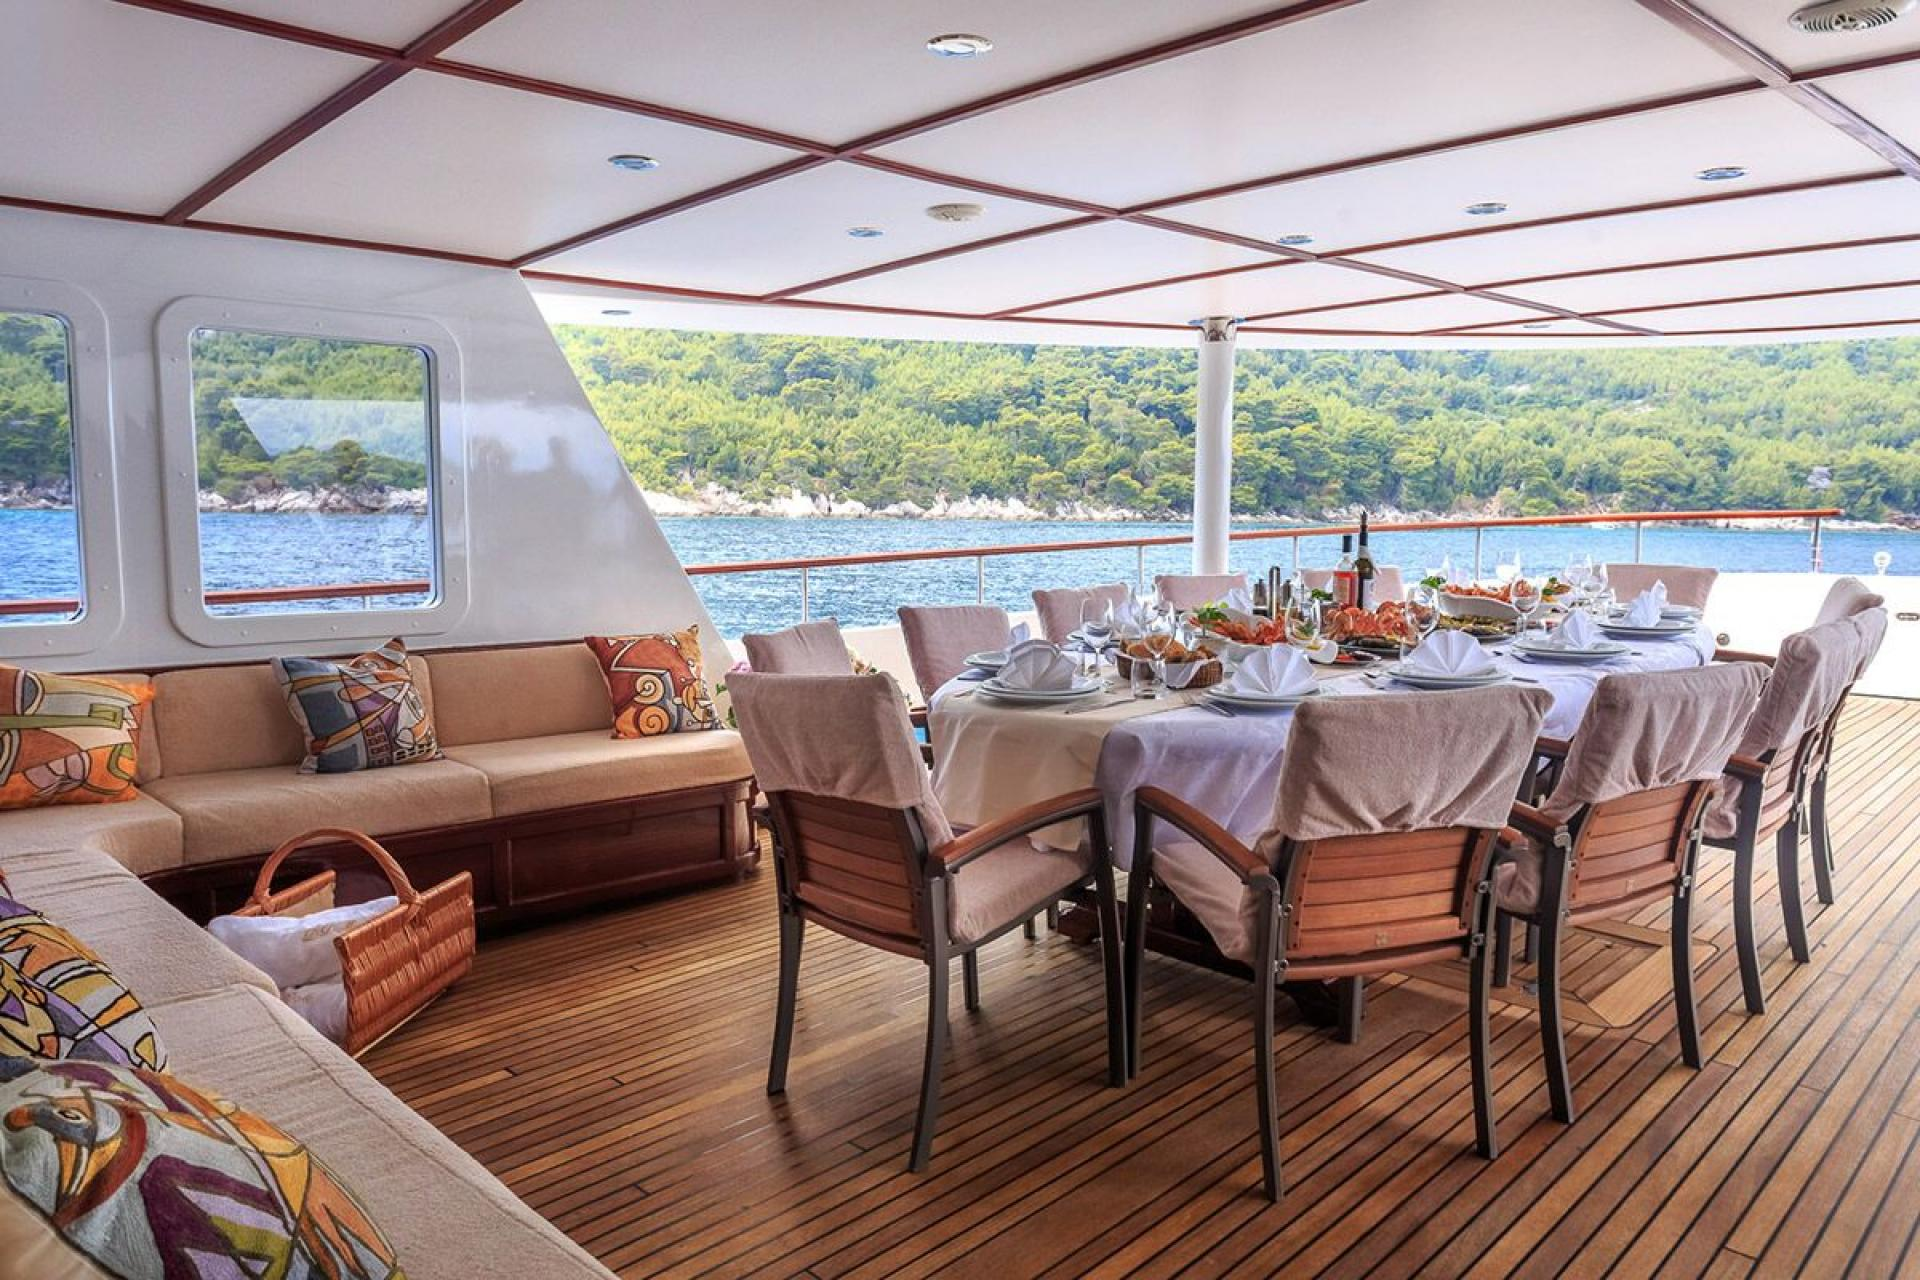 Donna-Del-Mare-yacht-outdoor-dining